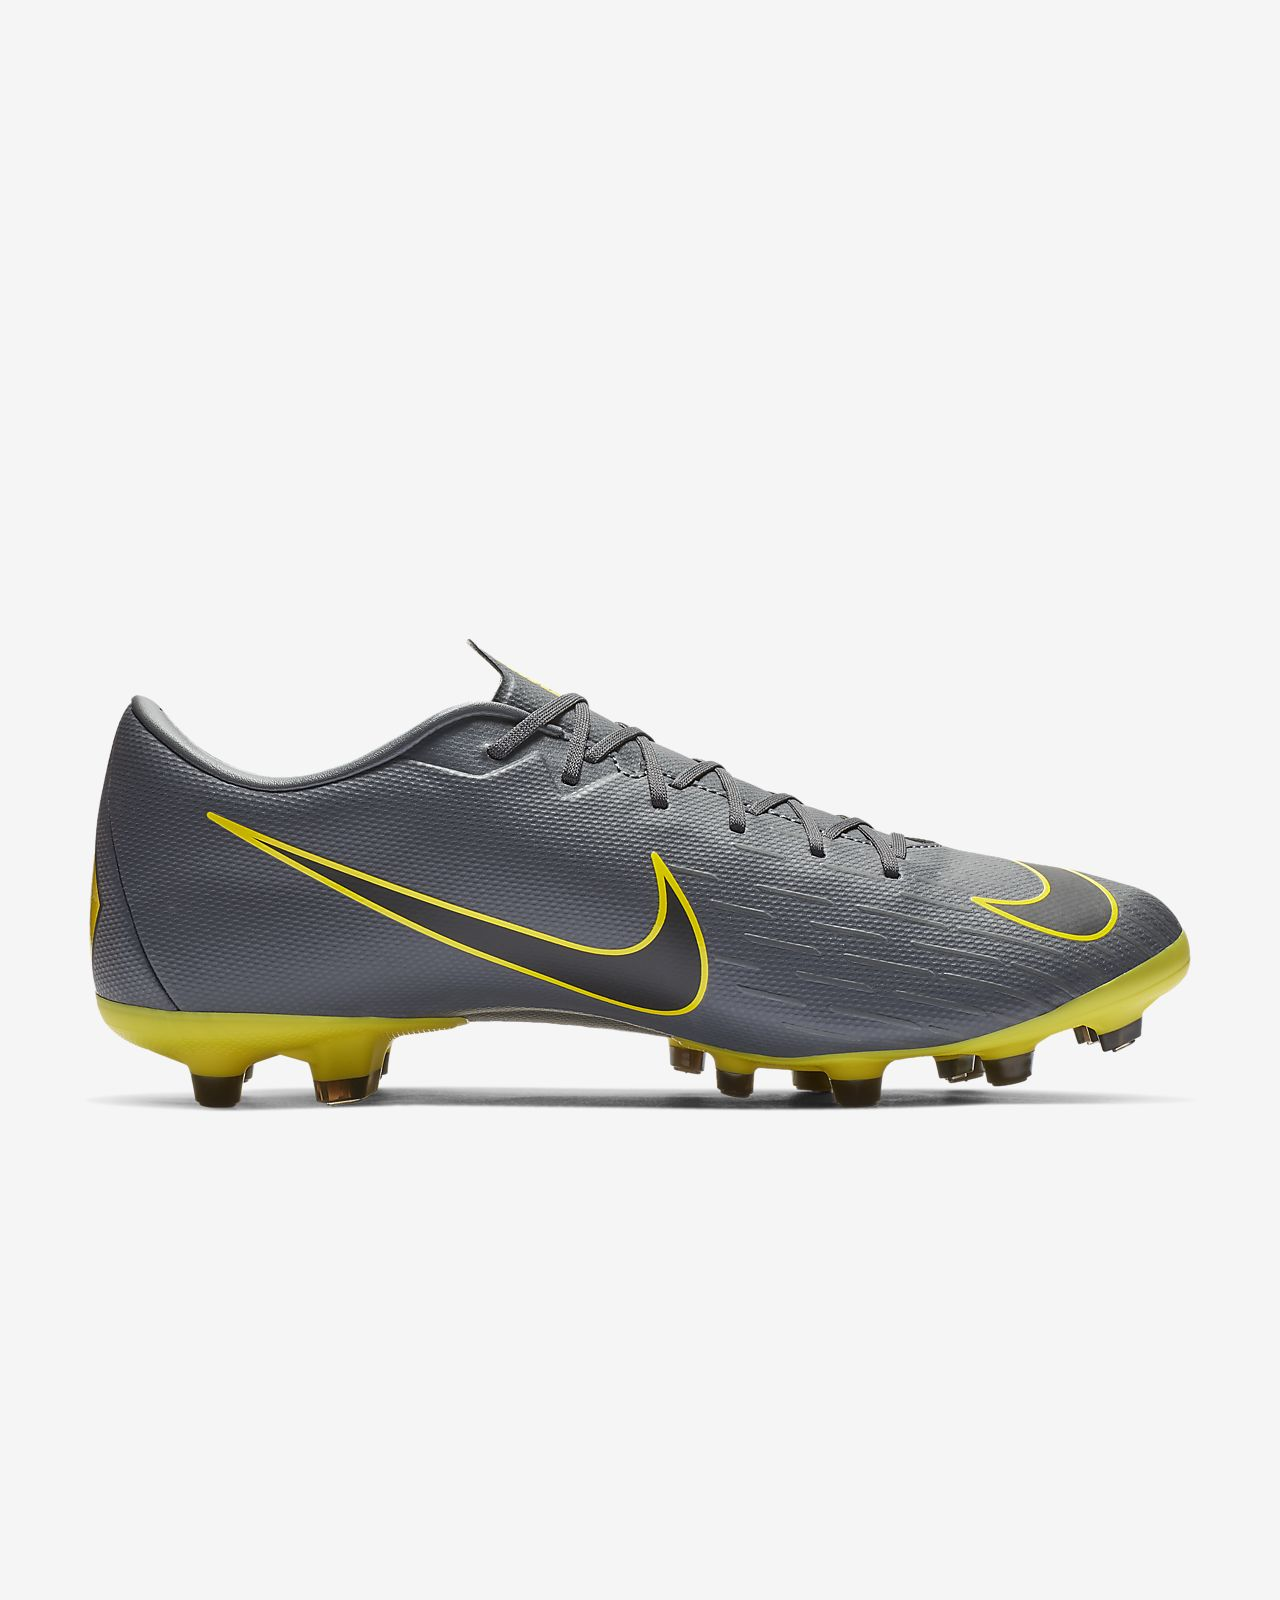 info for 44d31 8c376 ... Nike Vapor 12 Academy MG Multi-Ground Soccer Cleat